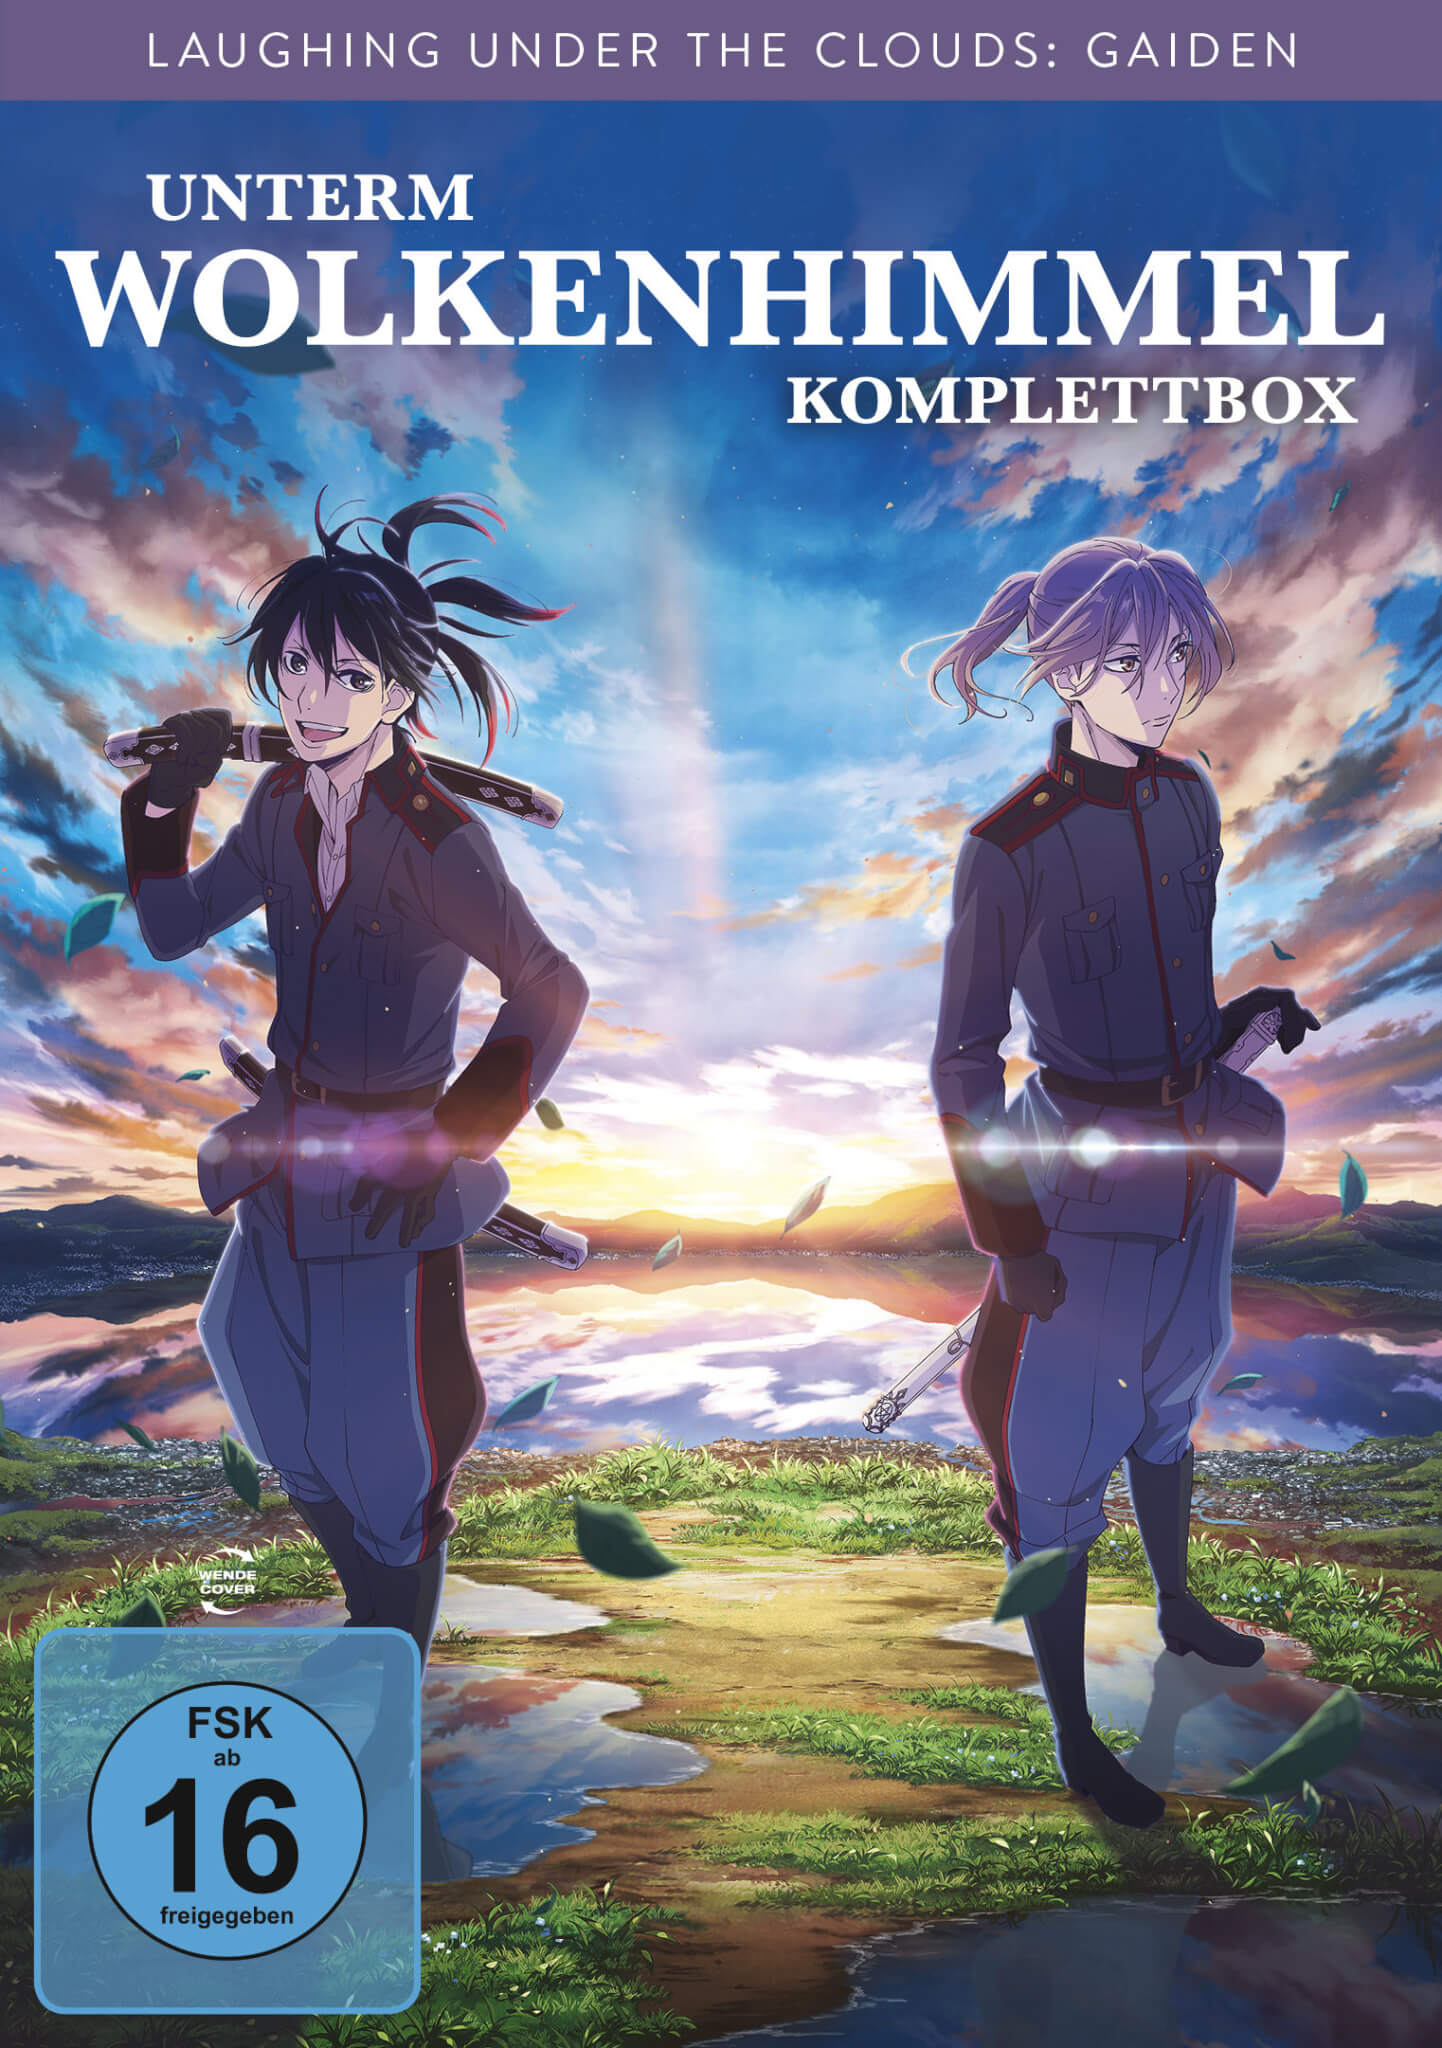 Laughing Under the Clouds: Gaiden Komplettbox